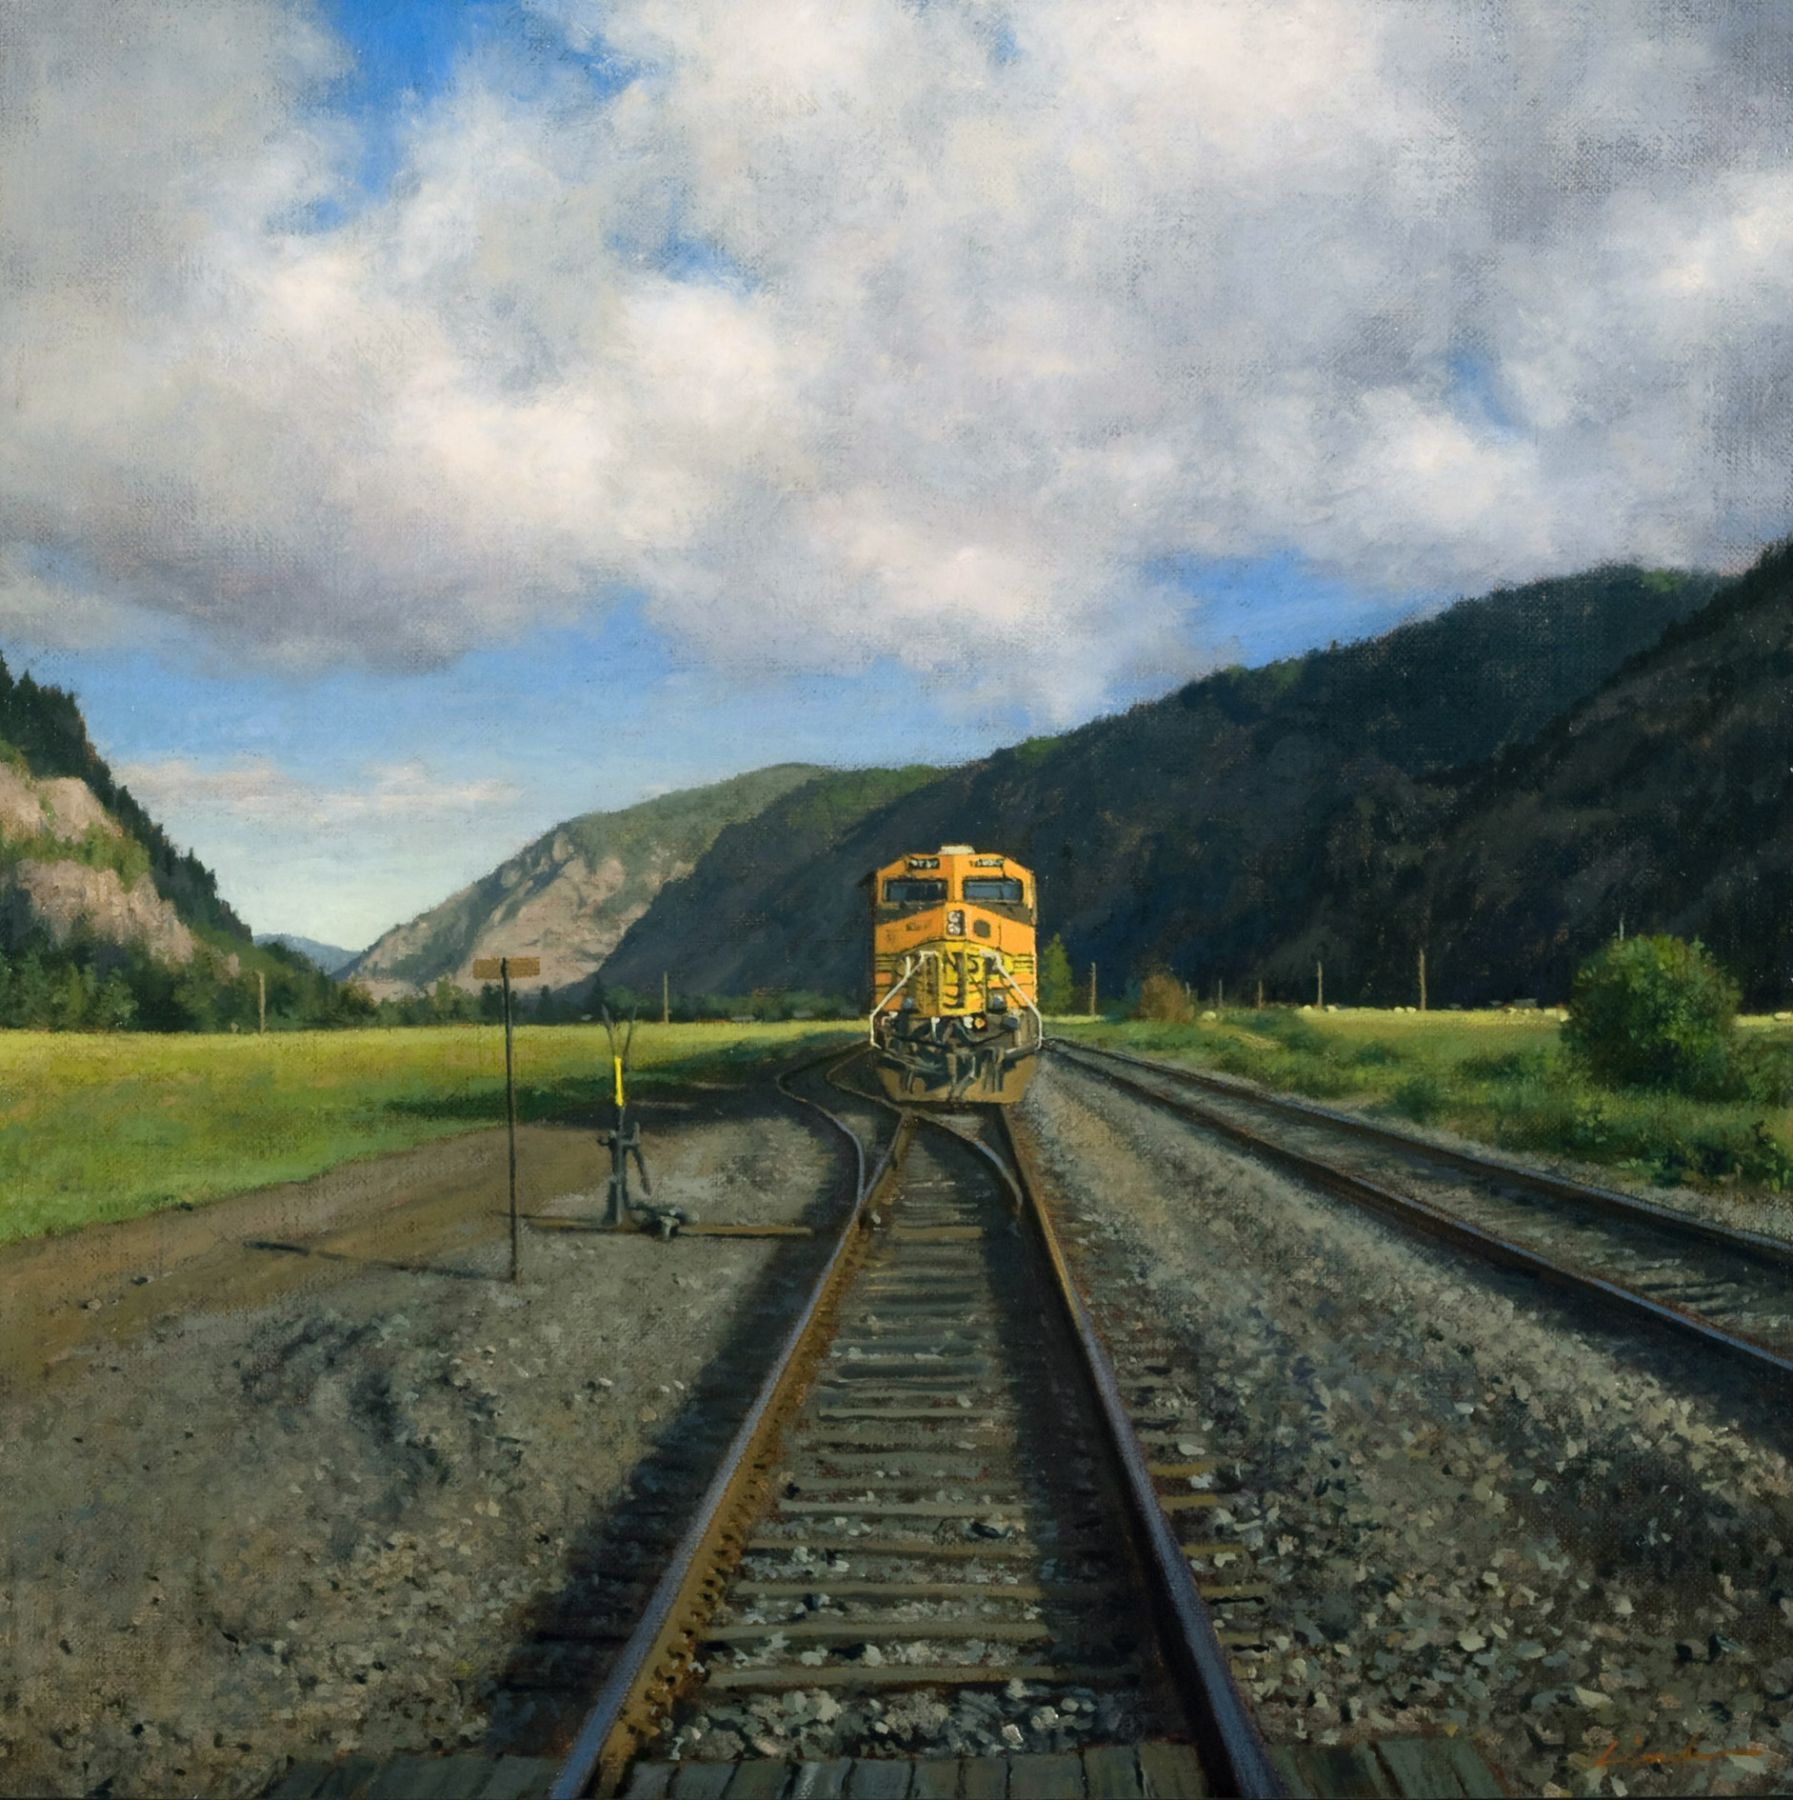 Linden Frederick, Coal Train (SOLD), 2007, oil on panel, 12 1/4 x 12 1/4 inches